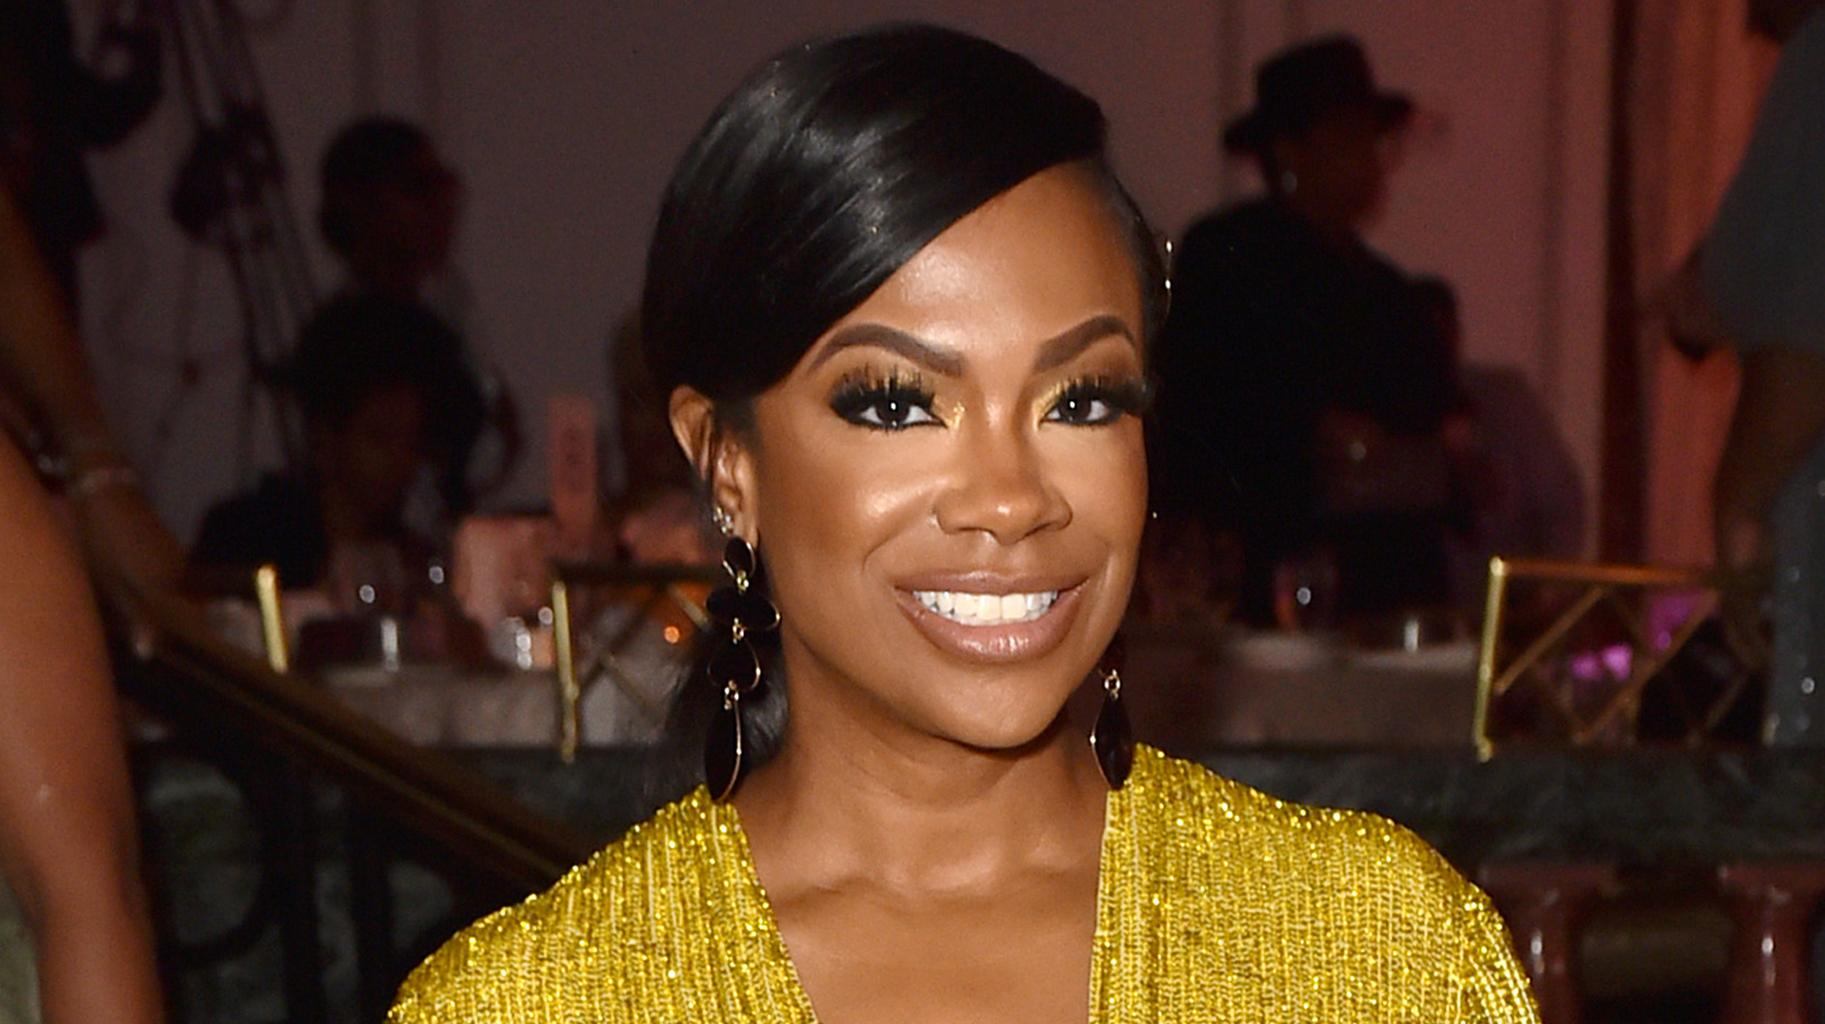 Kandi Burruss Shows Fans That She Can Still Smile During These Stressful Times